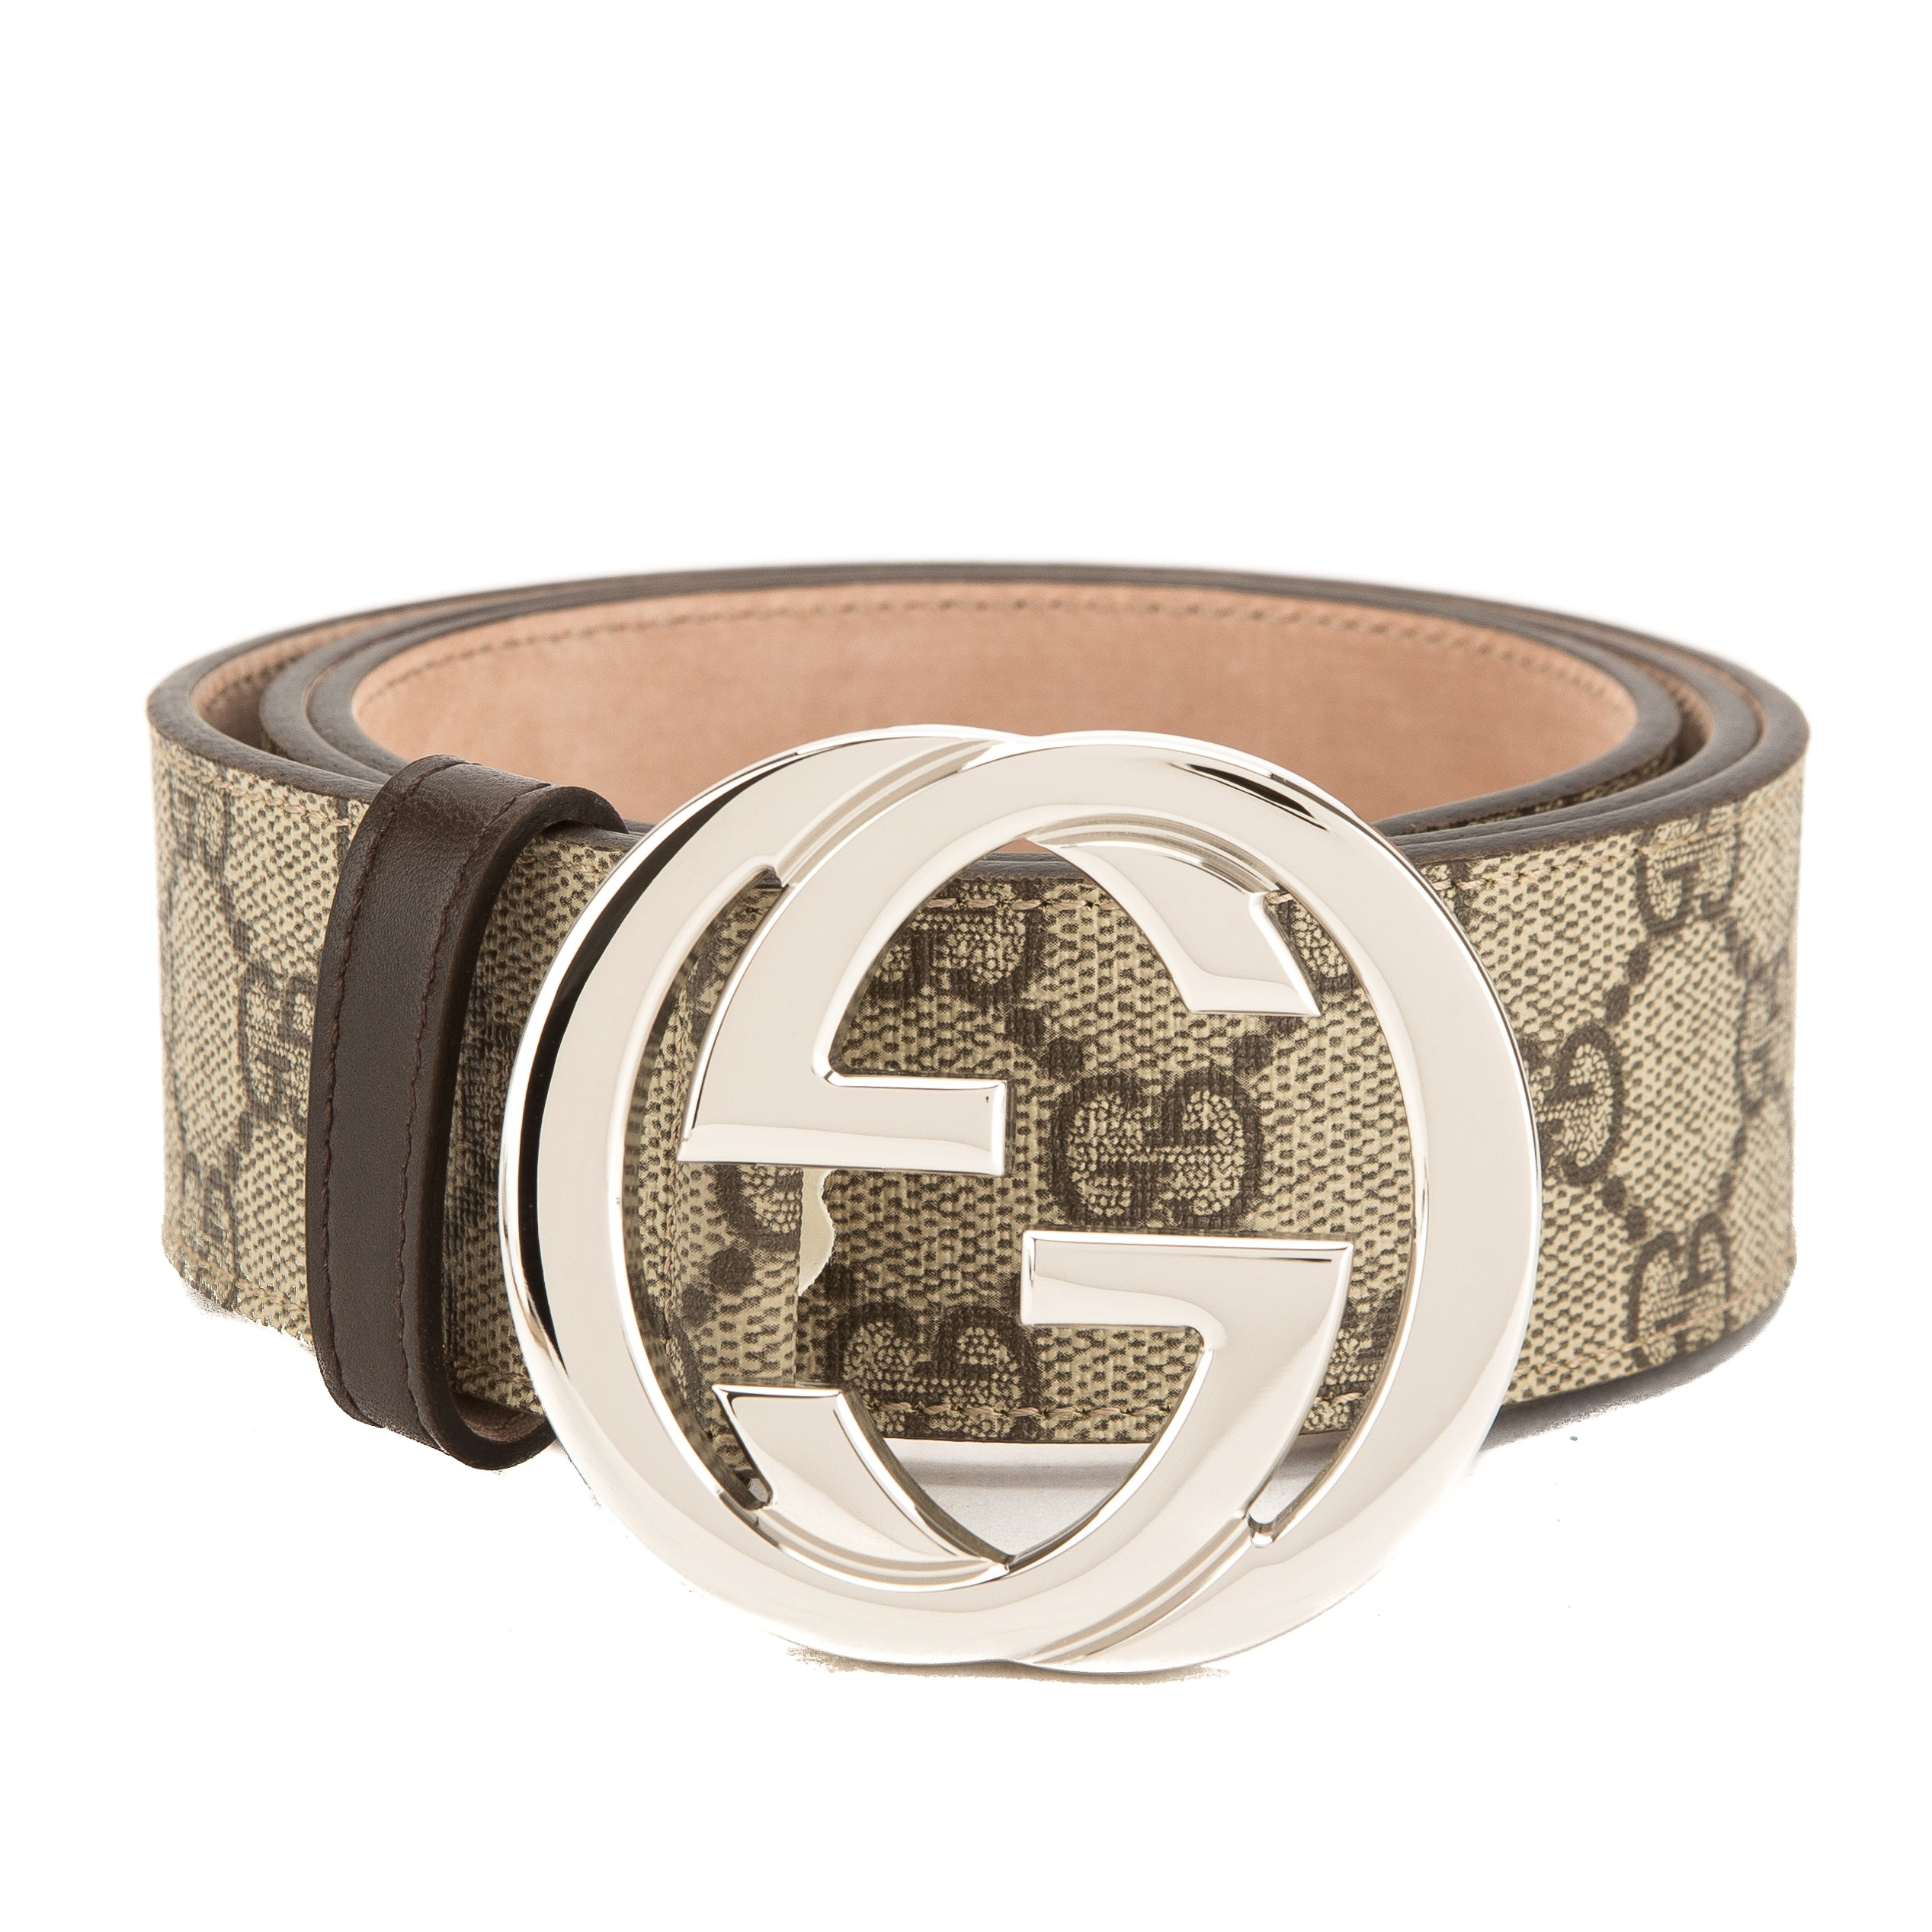 3d559e70a Gucci Brown Leather GG Supreme Interlocking G Belt (New with Tags ...